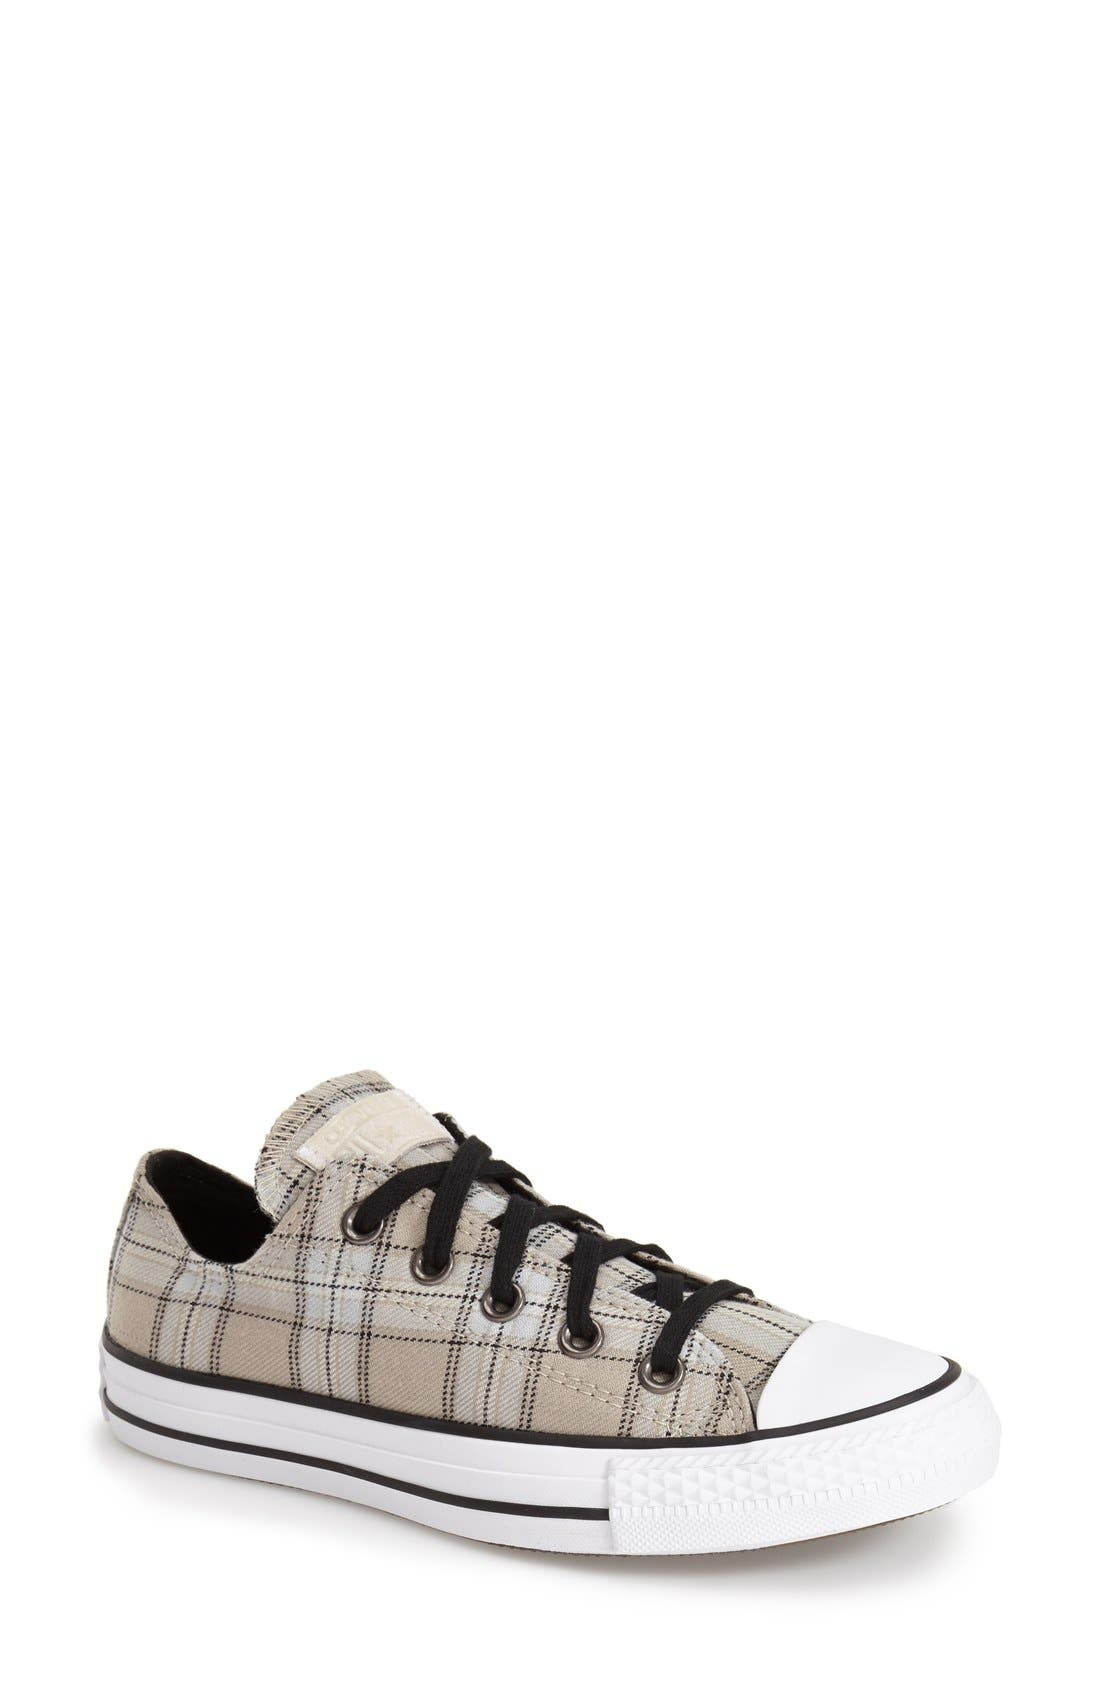 Chuck Taylor<sup>®</sup> All Star<sup>®</sup> Plaid Low Top Sneaker,                             Main thumbnail 1, color,                             250